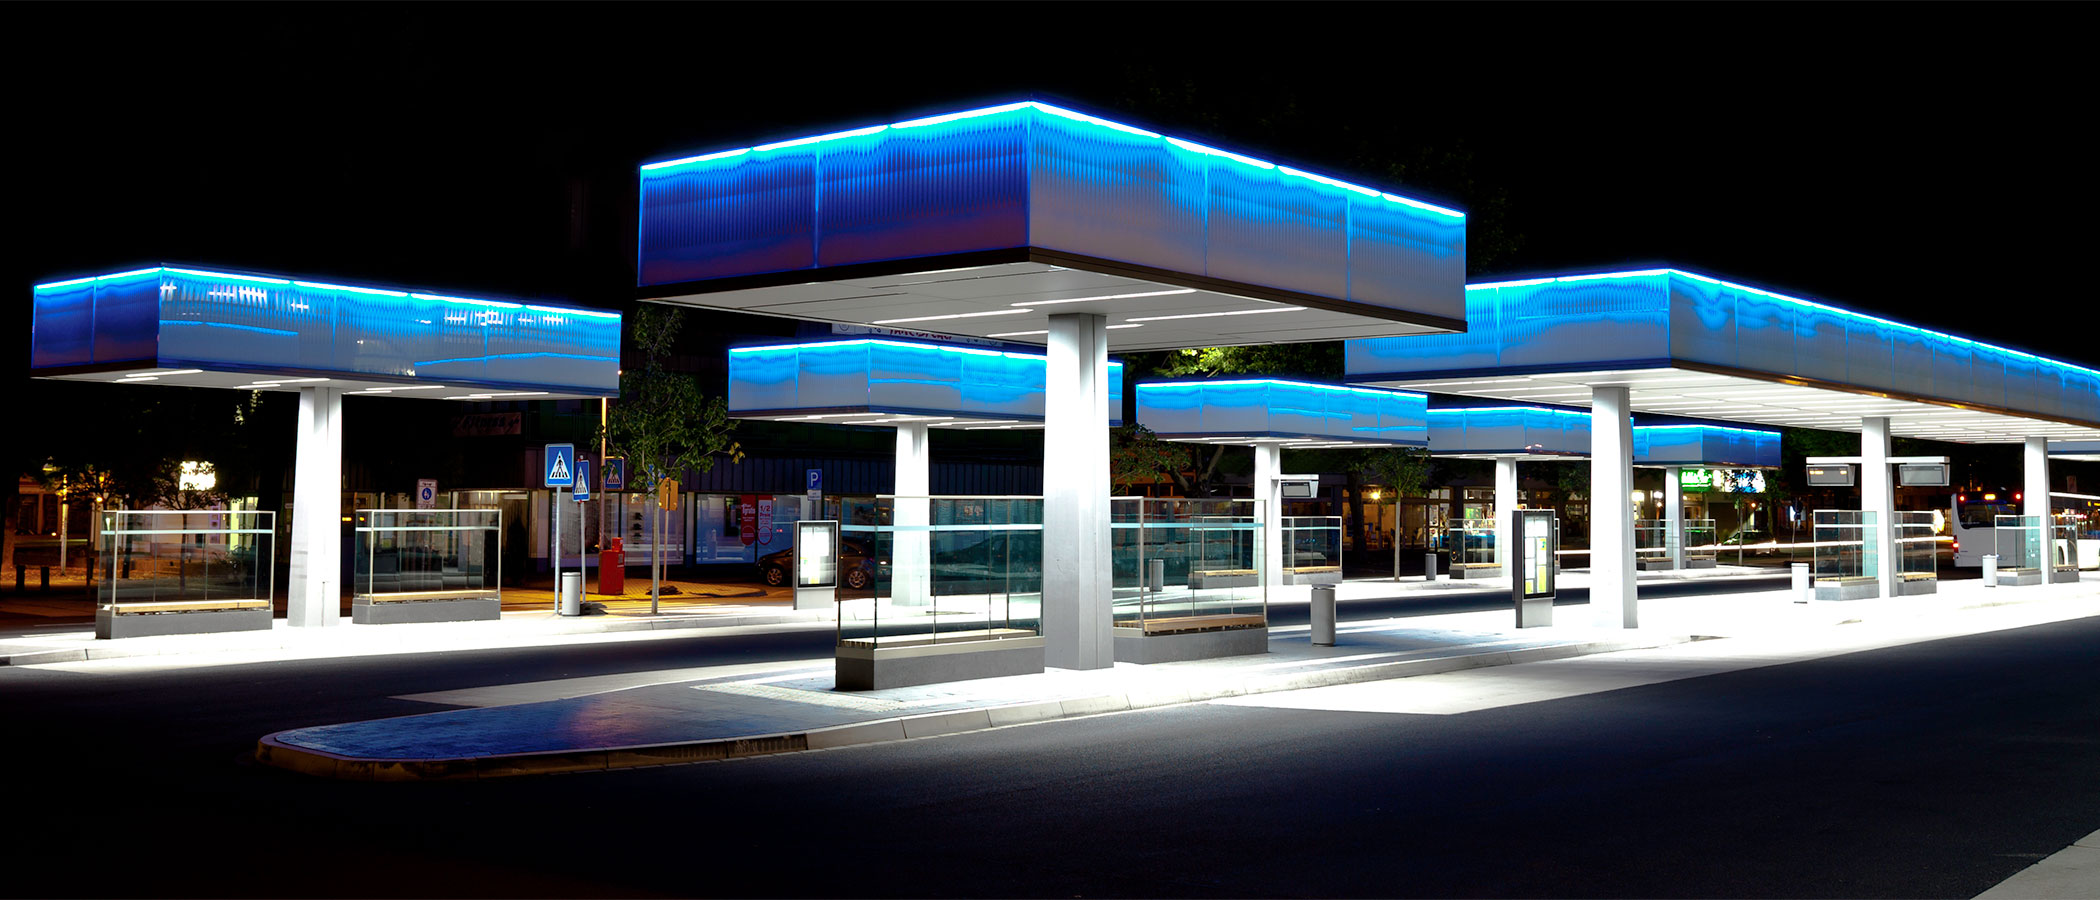 A modern bus terminal lit by blue and white LED lighting under protected canopies.